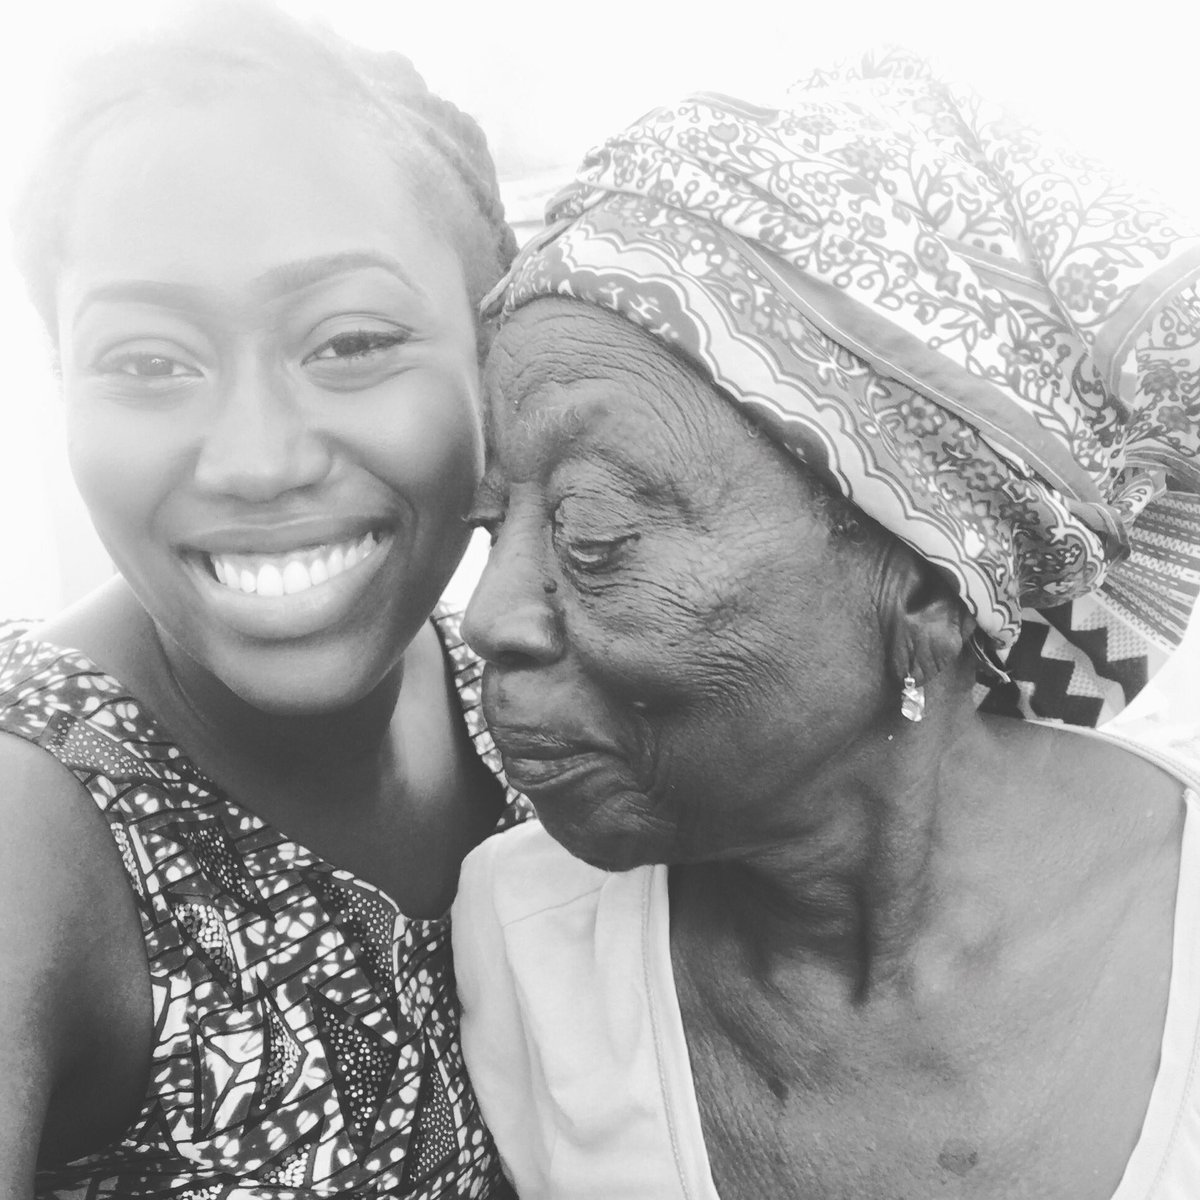 My great grandmother. 105 years old & still strong! Thank God for her life & I declare that I will live long too❤️